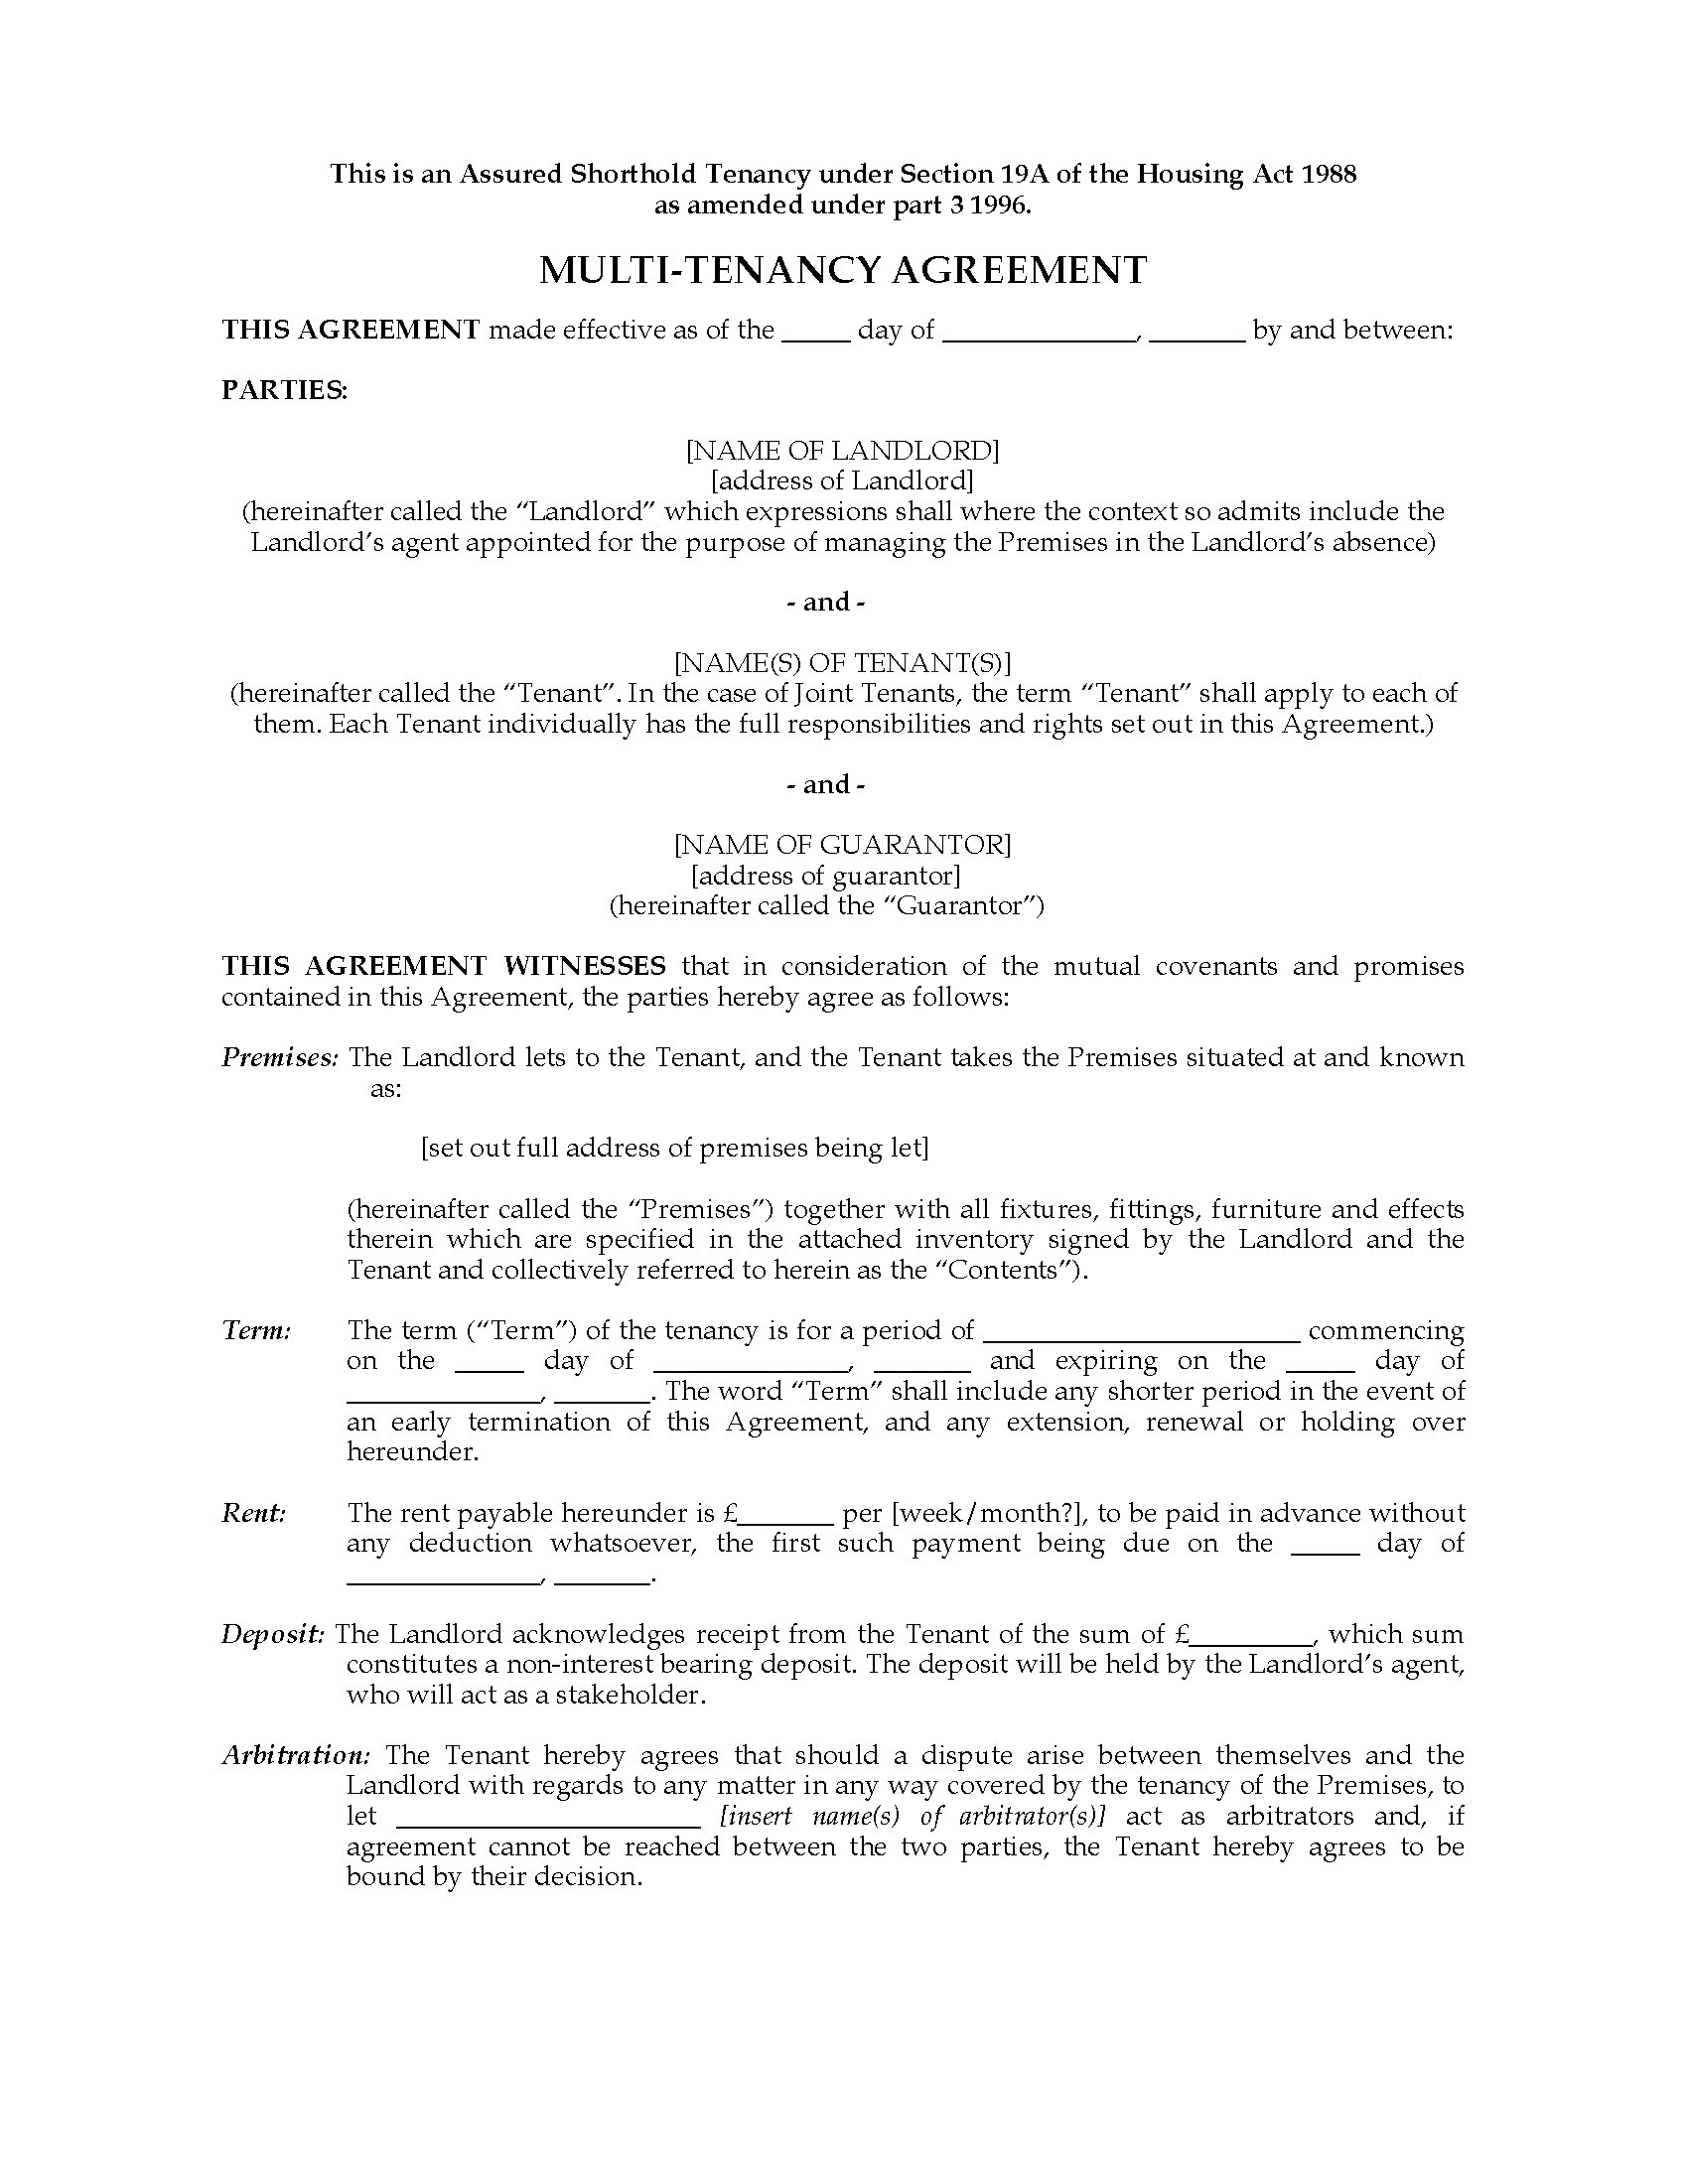 Good Shorthold Tenancy Agreement Template Images Gallery Assured